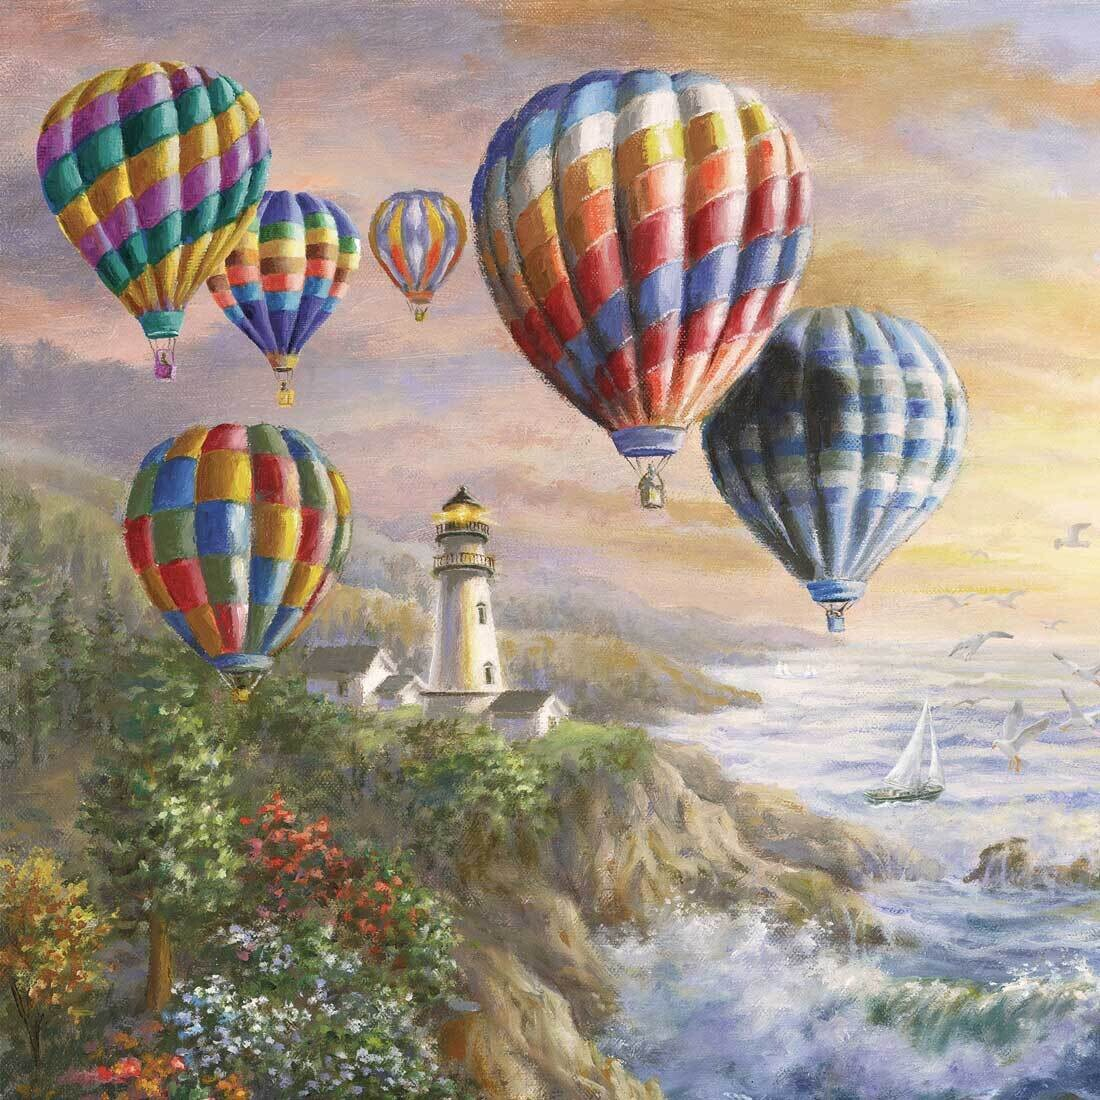 Decoupage Paper Napkins - Outdoor/Scenic - Hot Air Balloons 13x13 (1 Sheet)